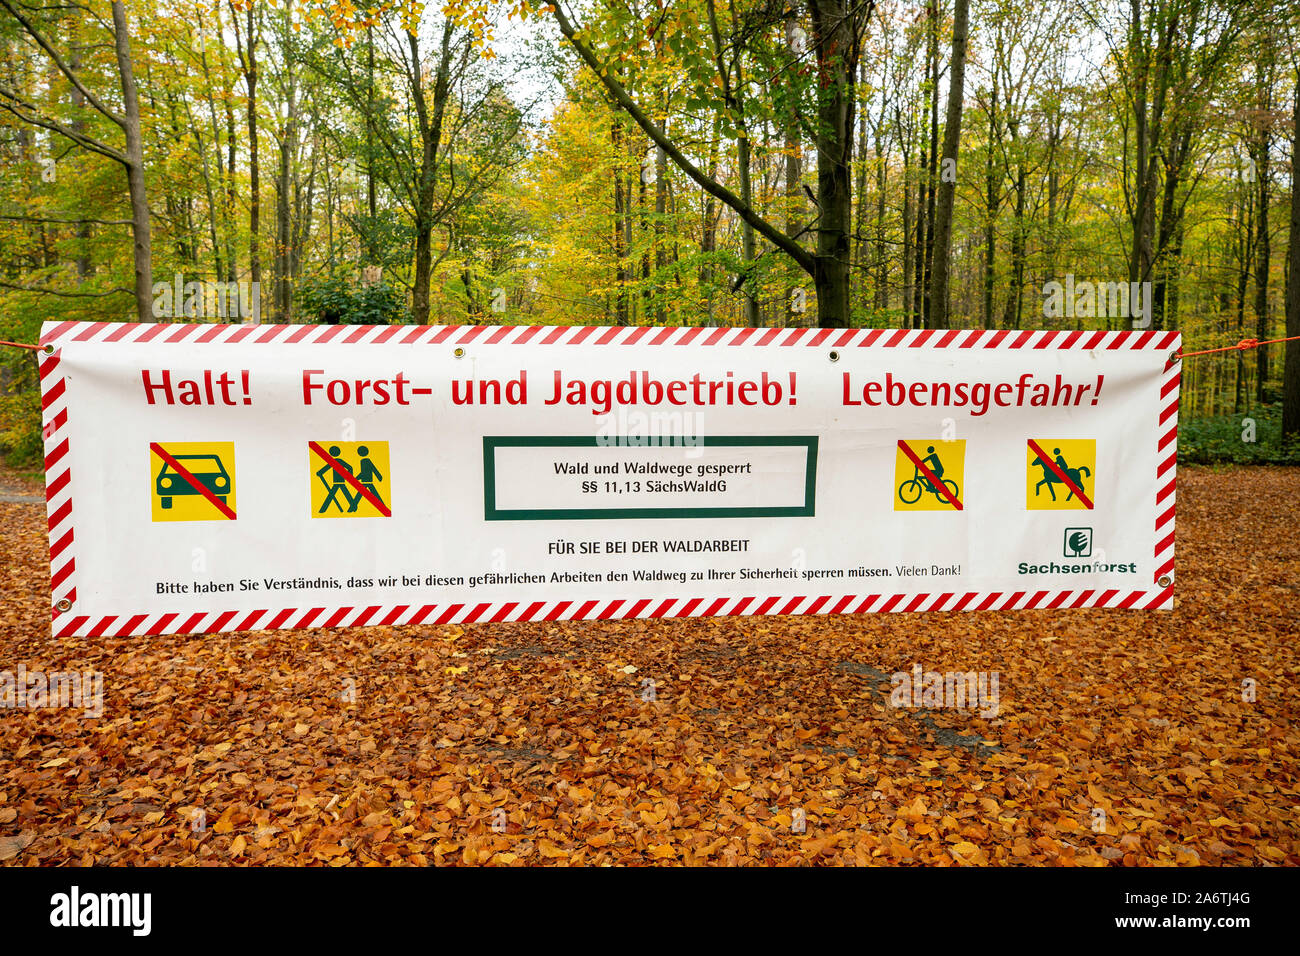 Use them in commercial designs under lifetime,. Forest Law High Resolution Stock Photography And Images Alamy